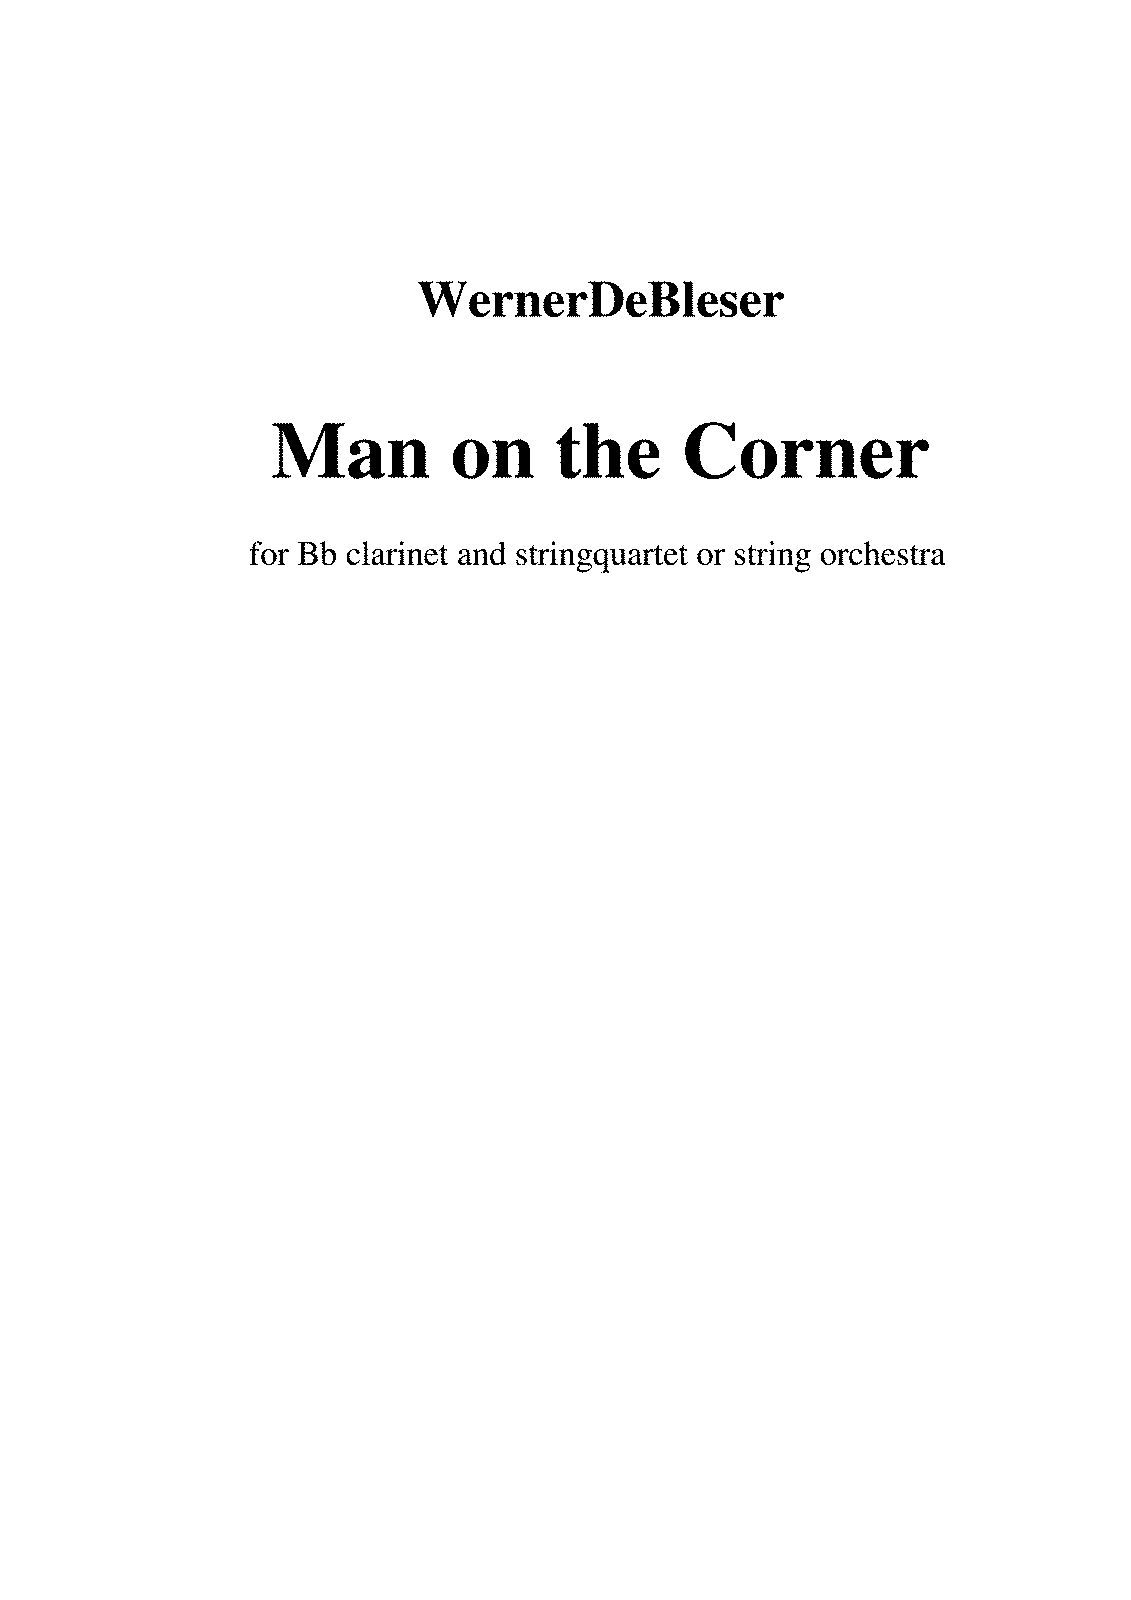 PMLP439721-C091B - MAN ON THE CORNER - v2 - clarinet quintet - SCORE.pdf